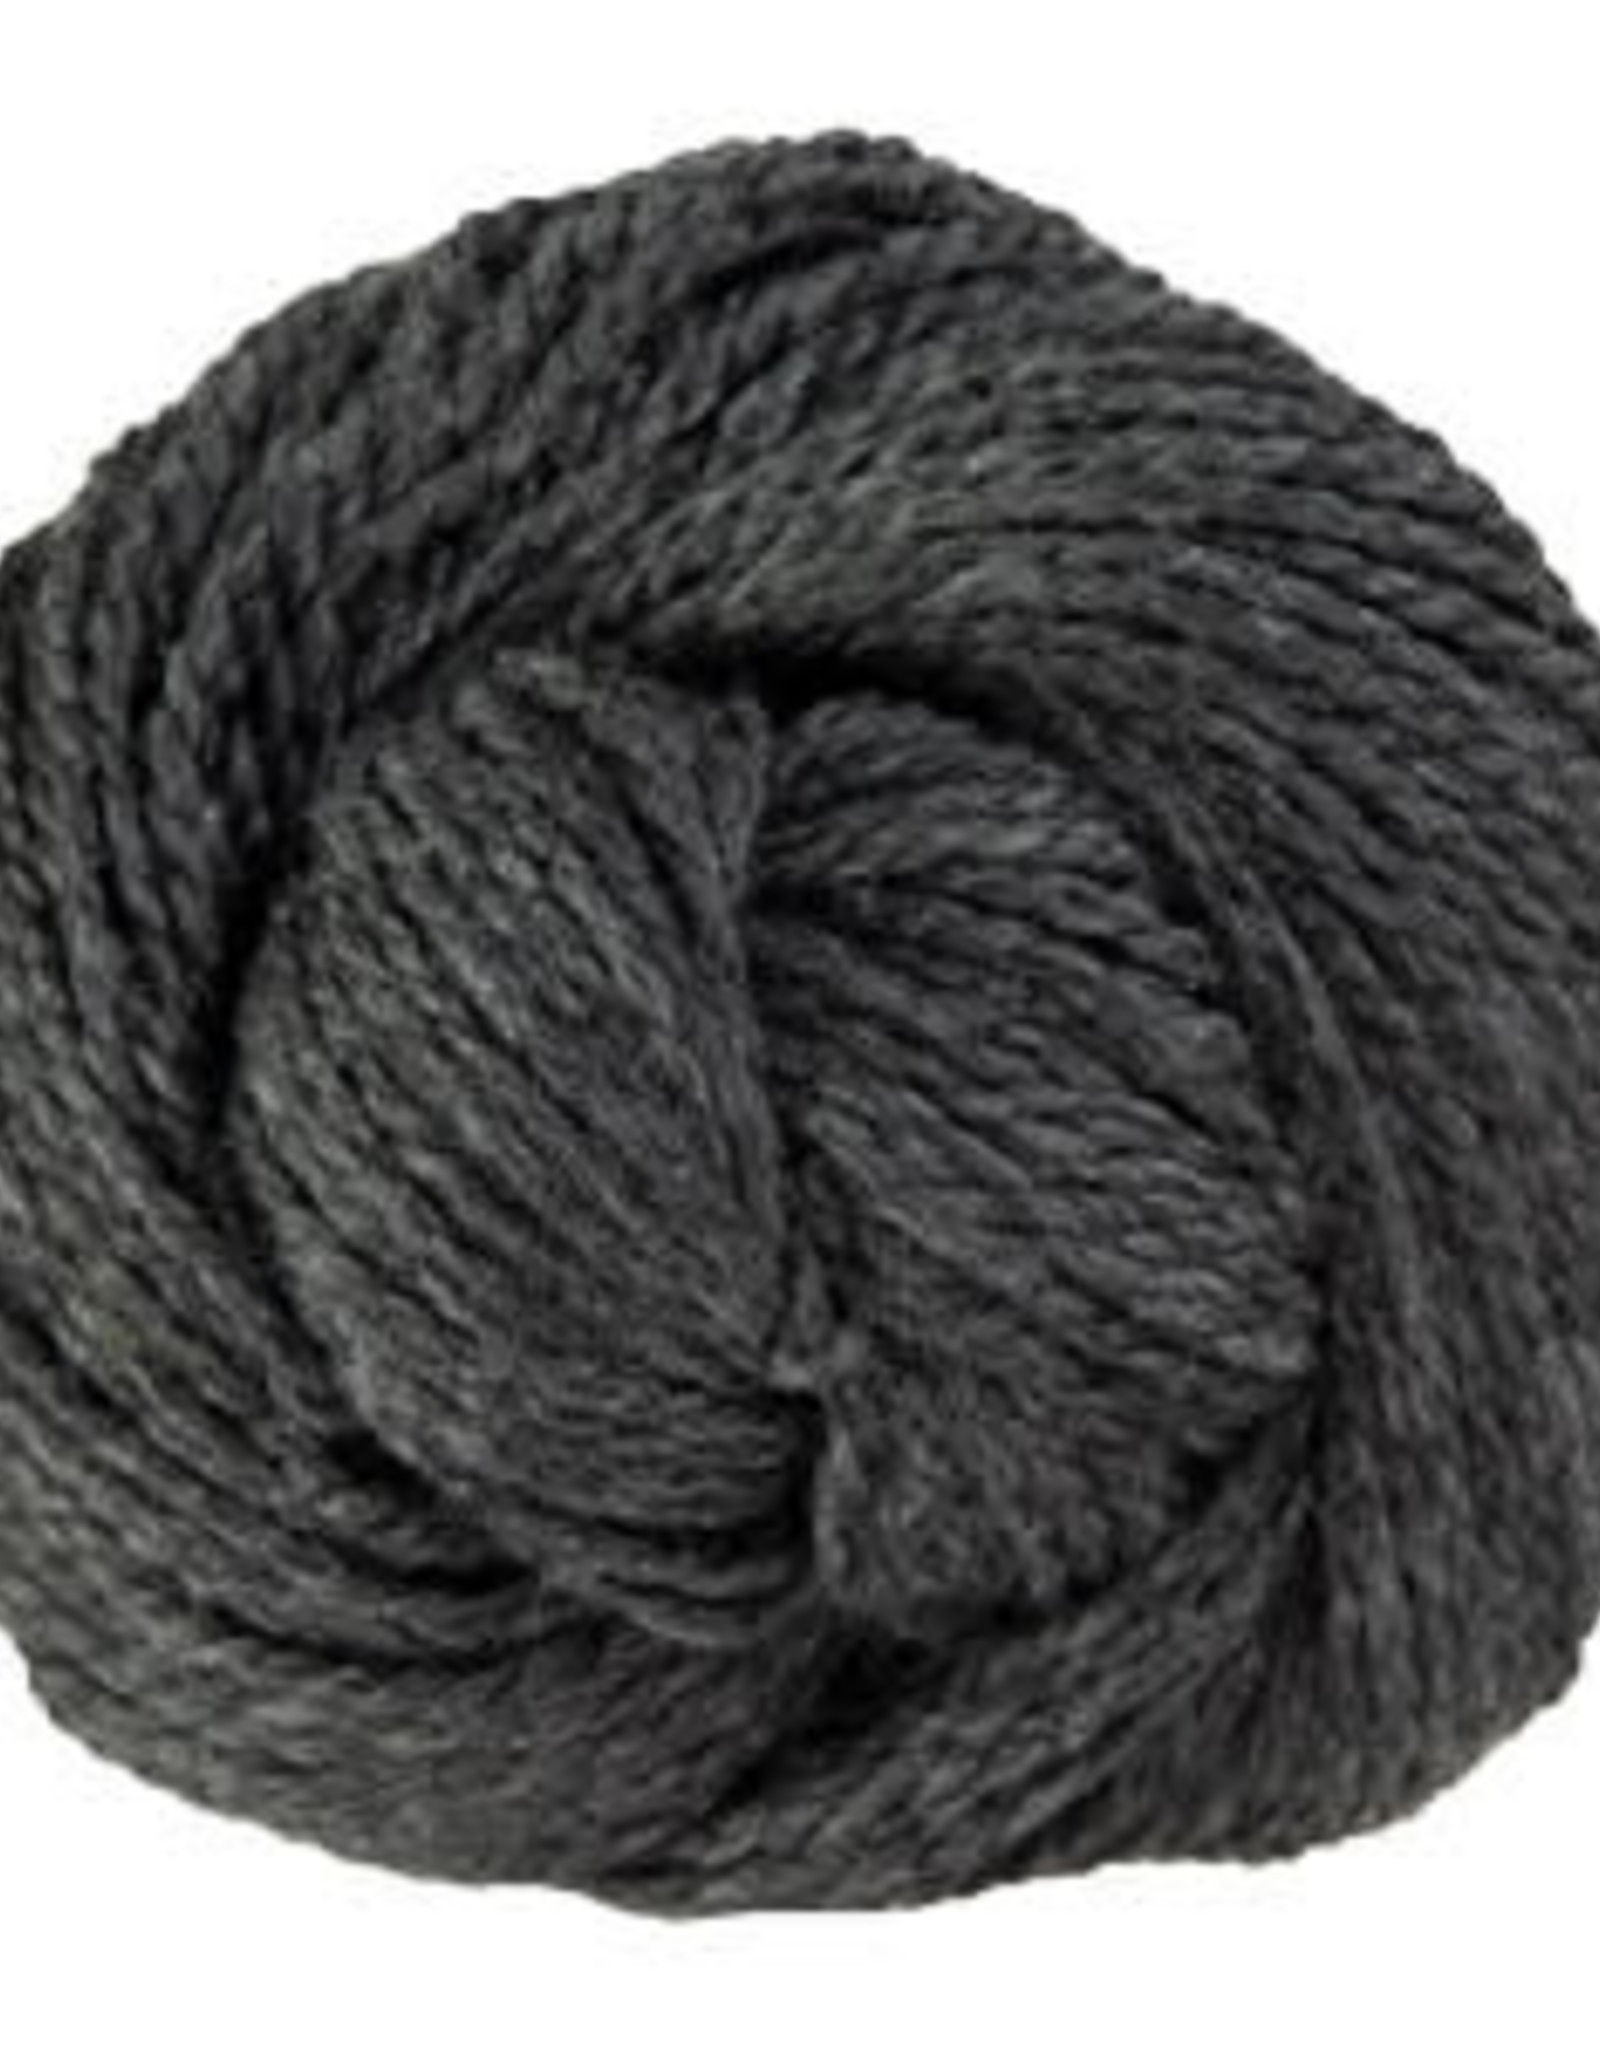 Blue Sky Woolstok 150g. - Worsted Weight